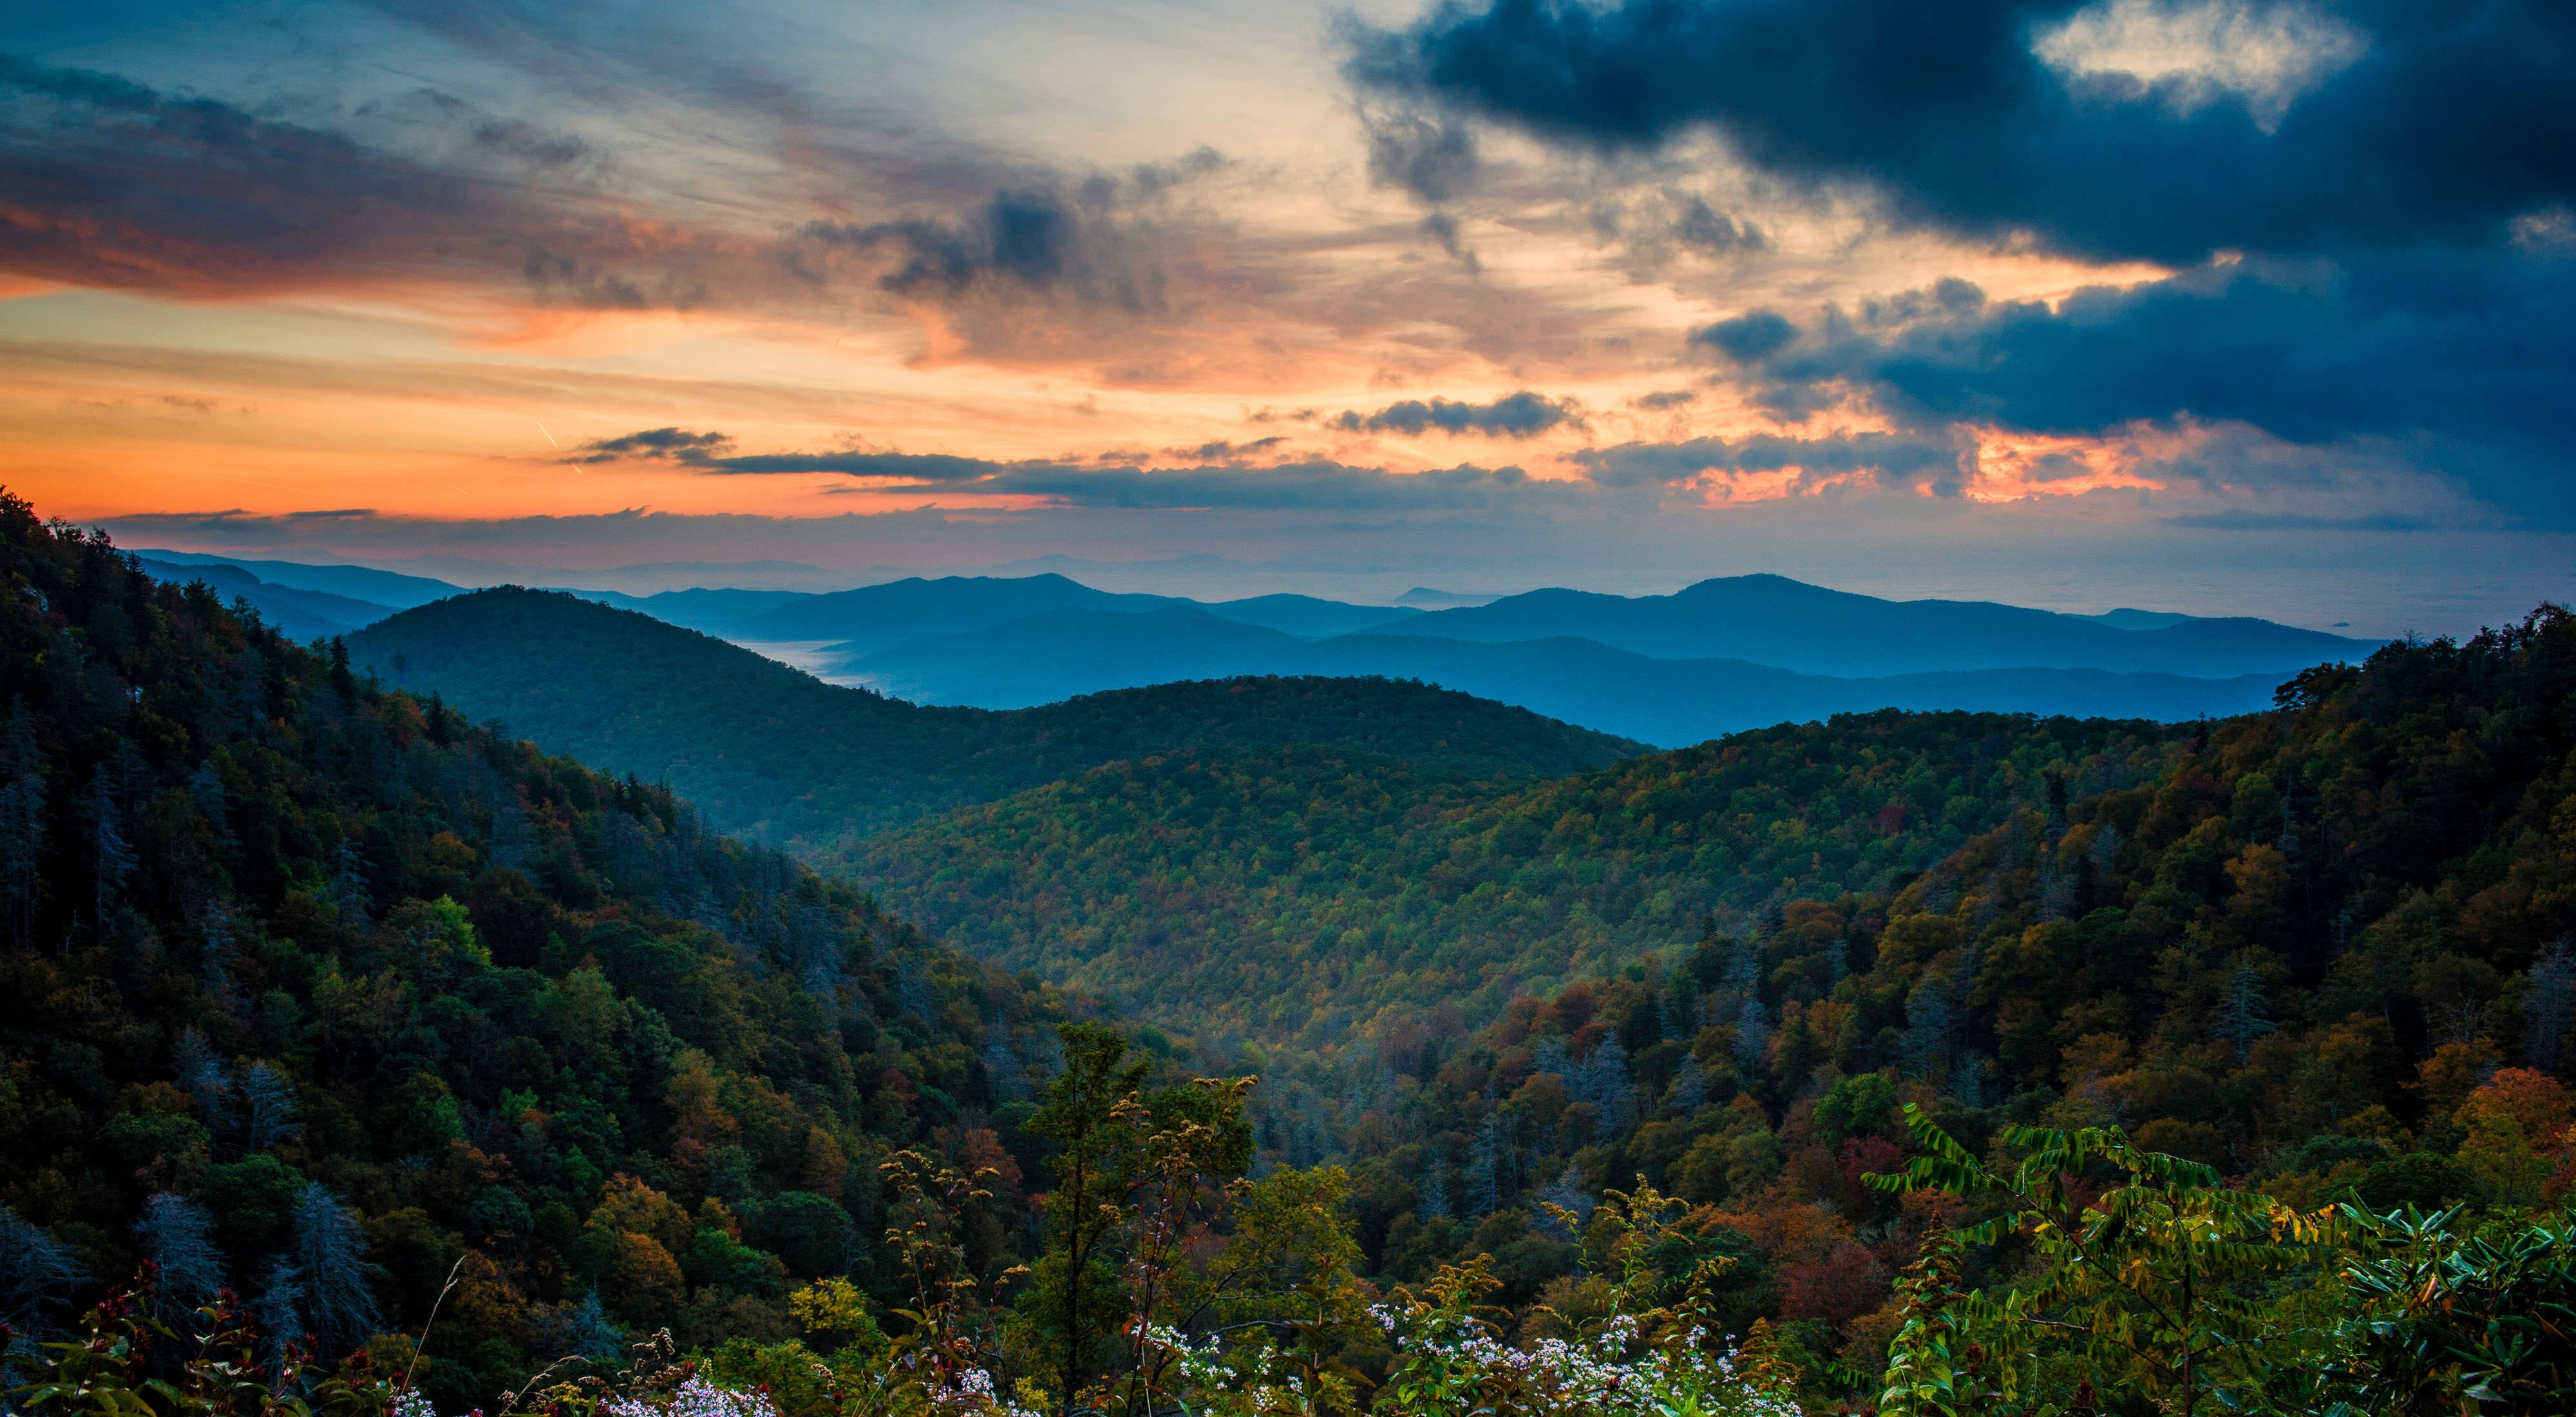 Blue Ridge Parkway in western North Carolina.